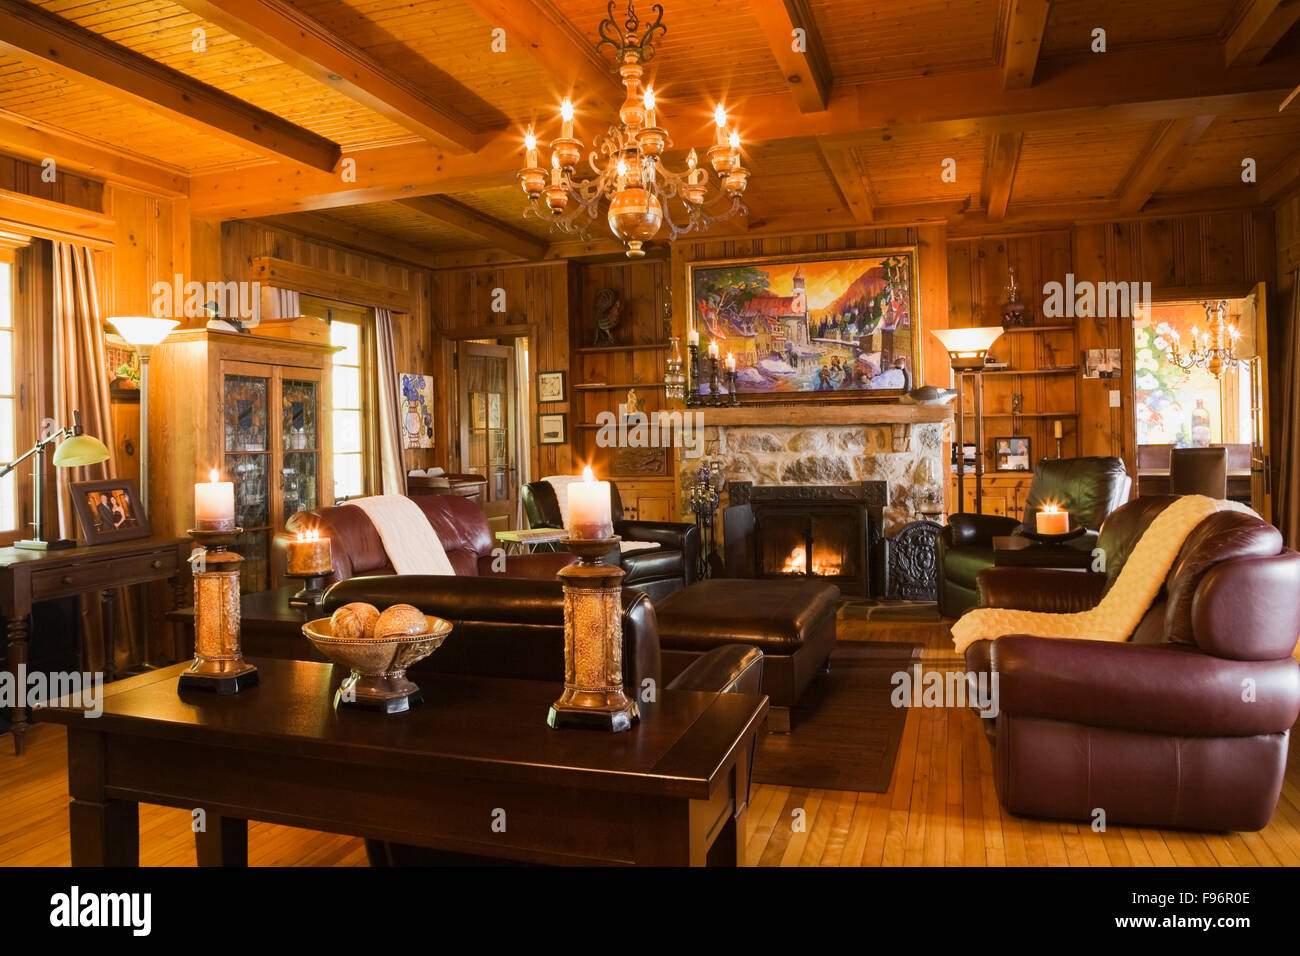 Lit Stone Fireplace And Brown Leather Chairs And Sofas In The Living Room  Inside A 1920s Cottage Style Old Home. Quebec, Canada